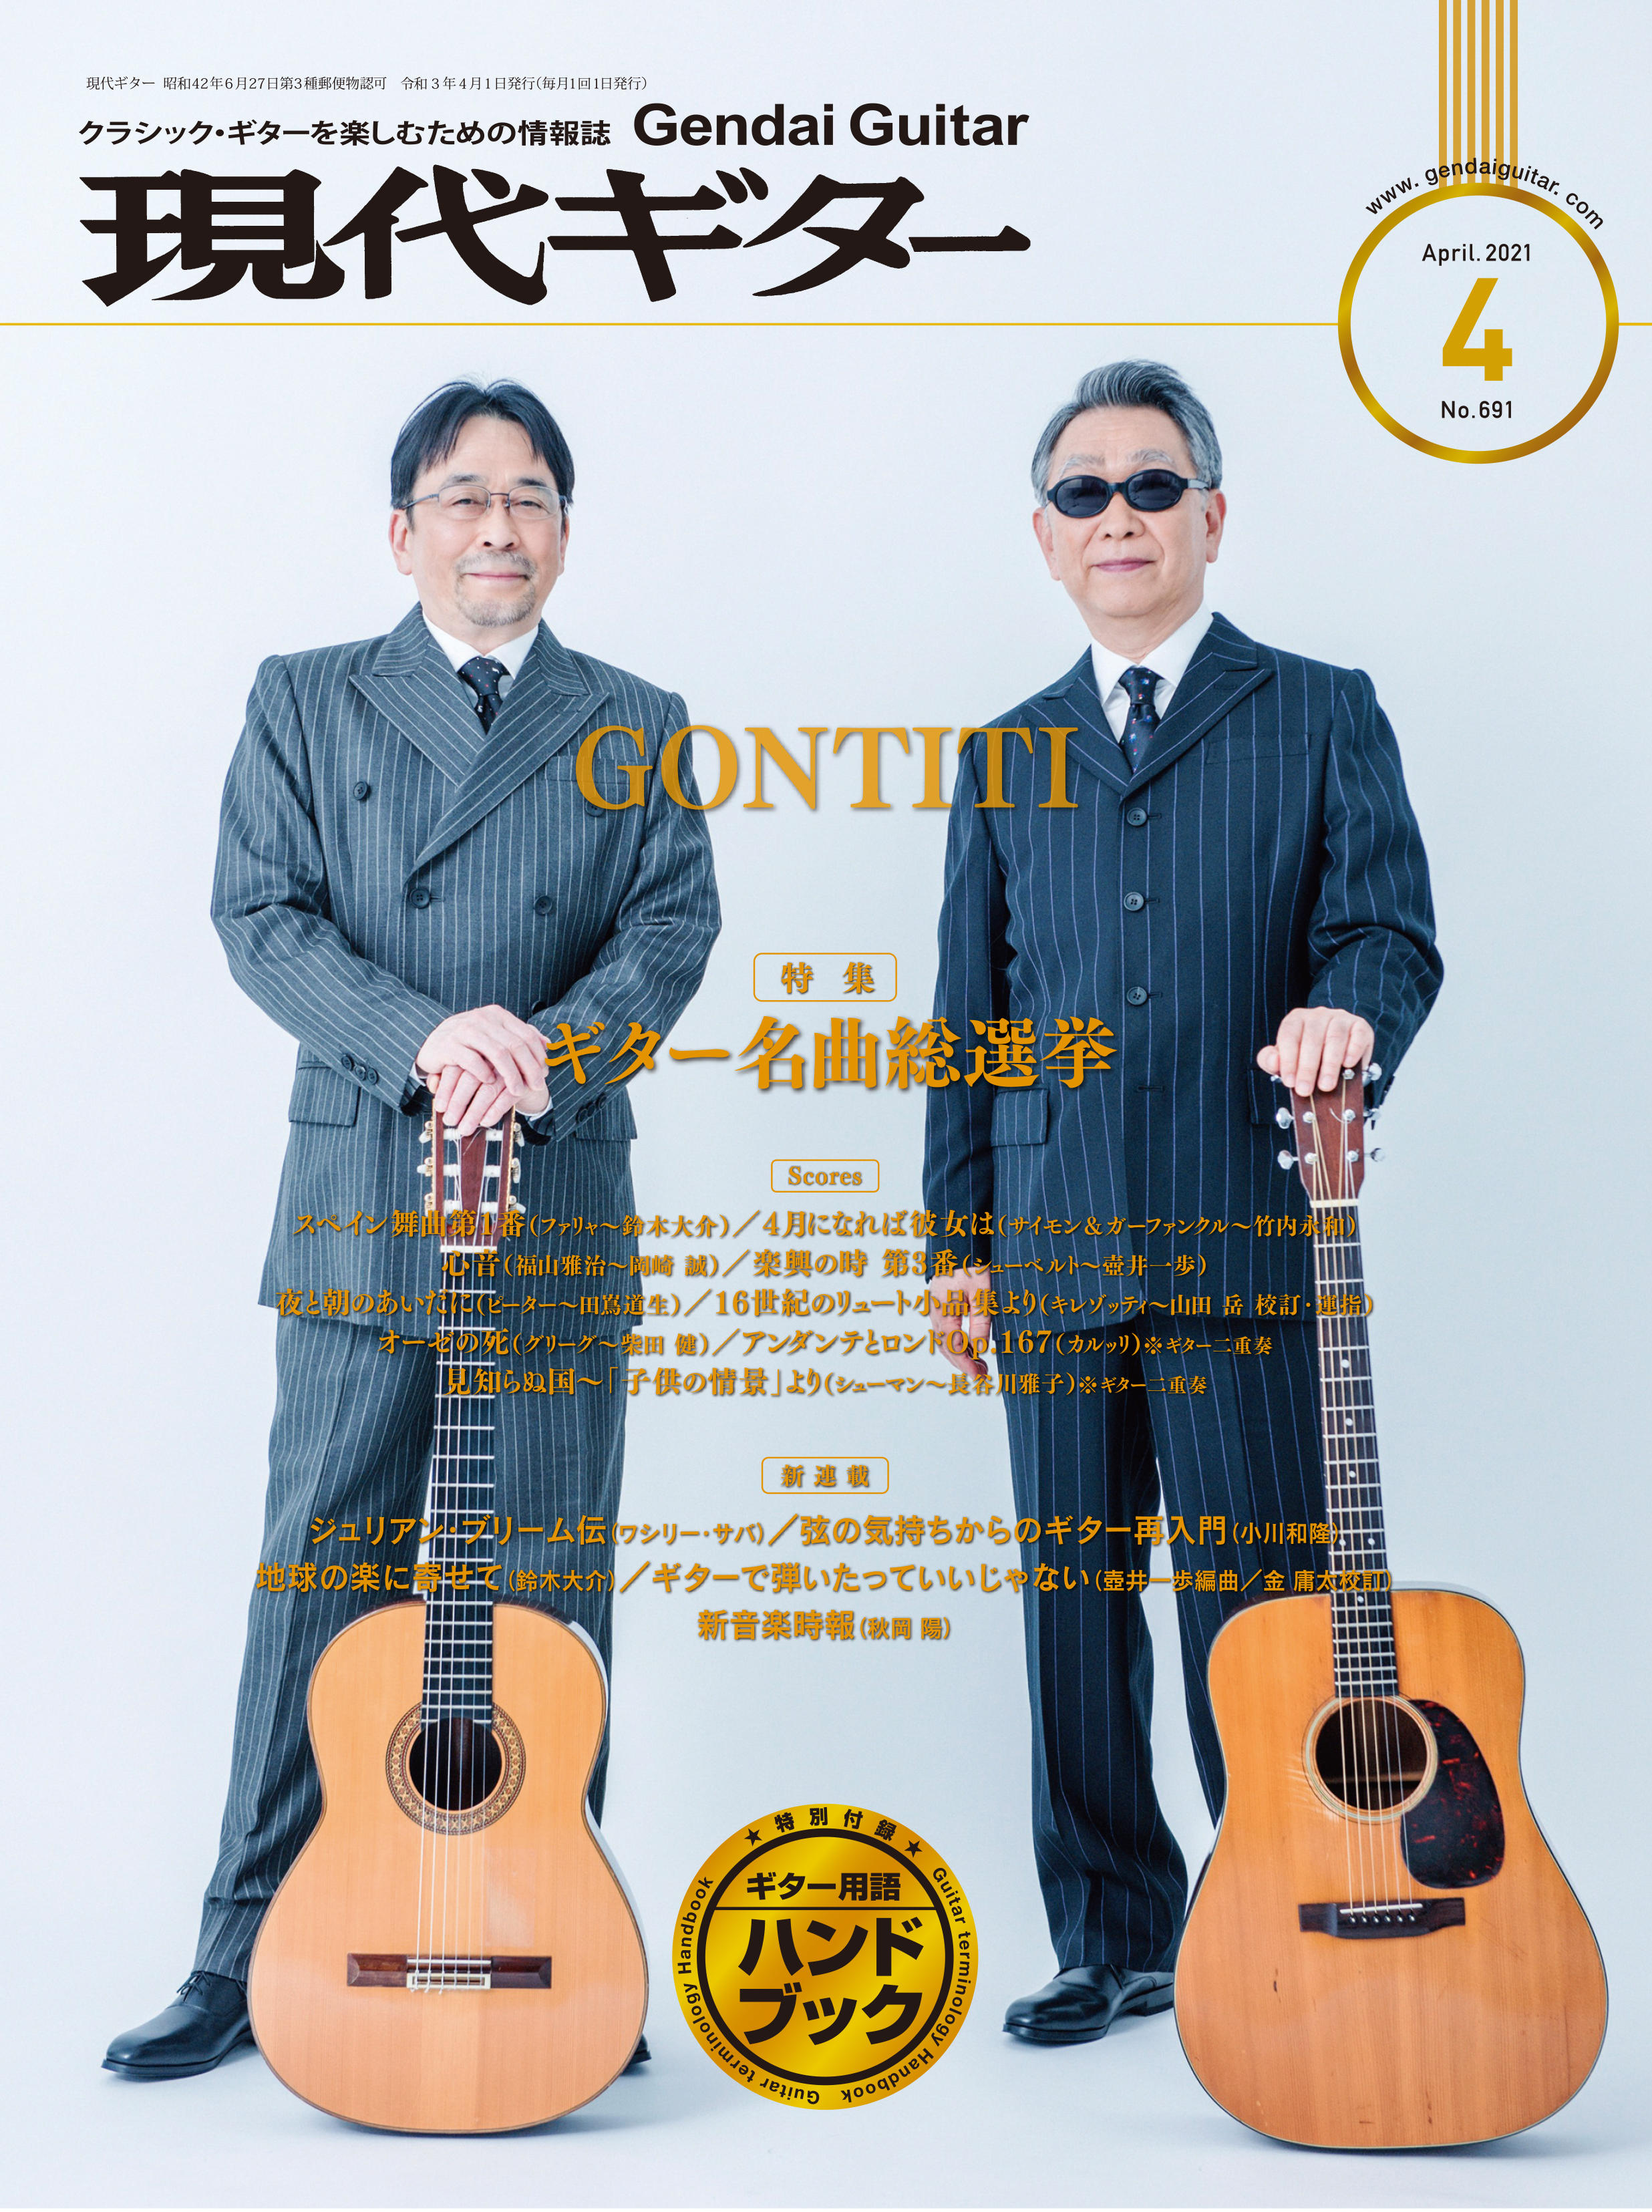 https://www.gontiti.jp/news/images/cover_2021_april_d_cs3_ol.jpg